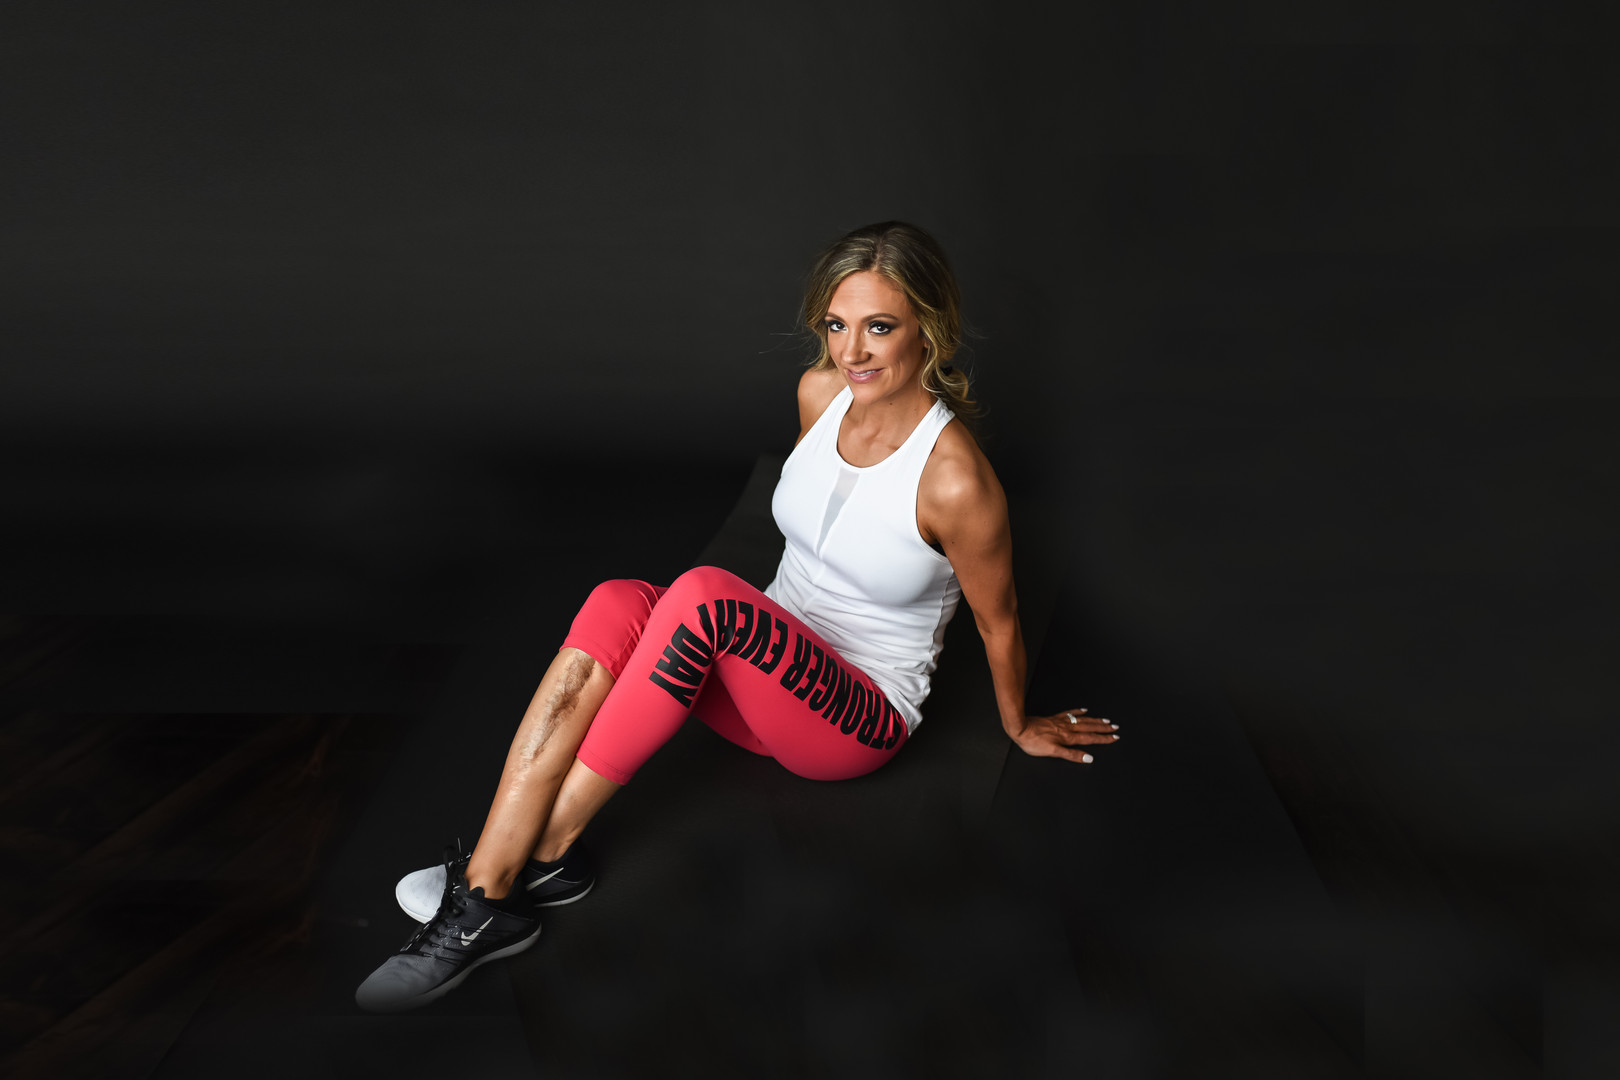 Naperville Fitness Photographer